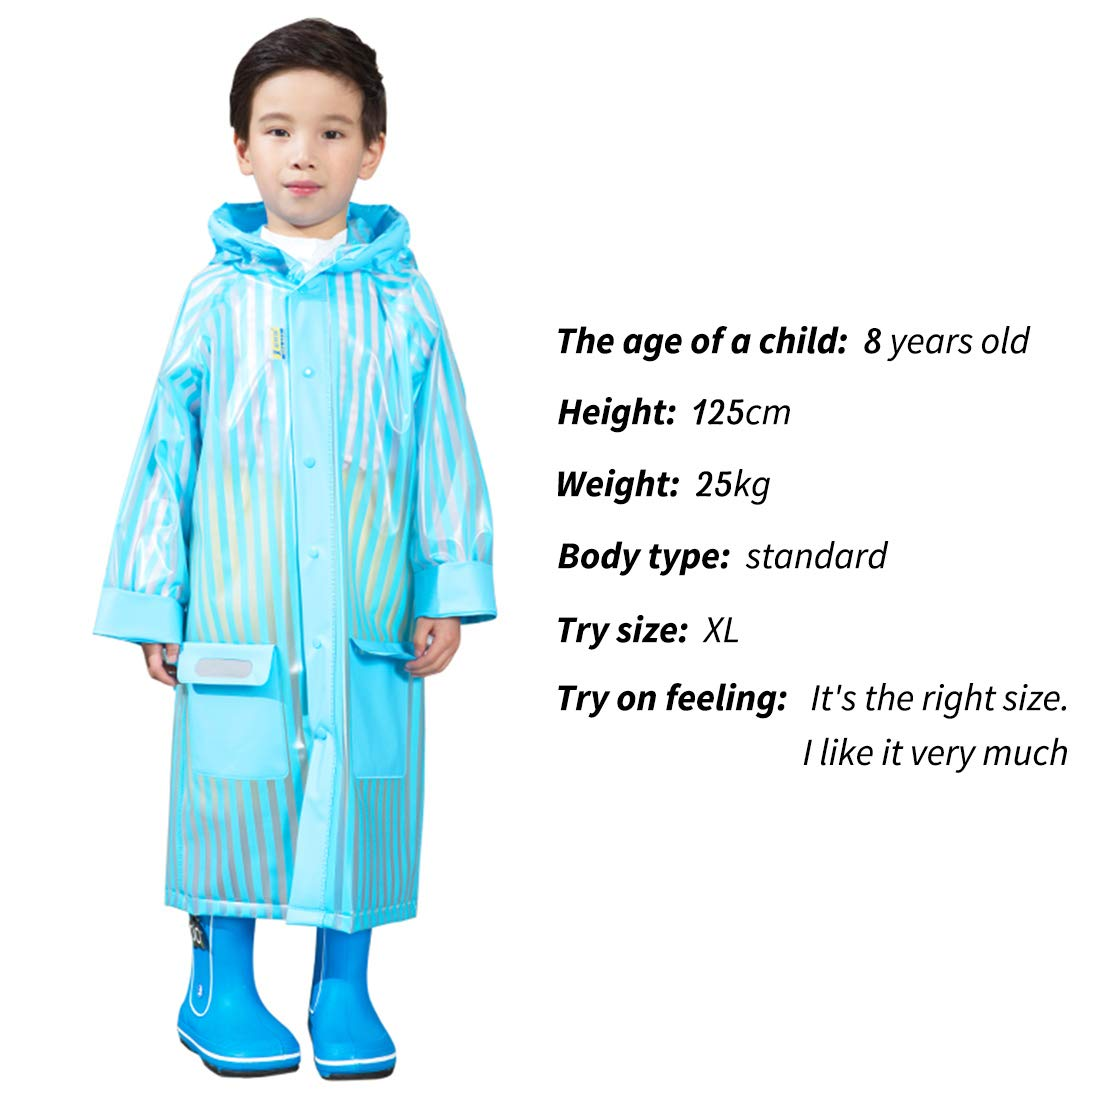 WITERY Rain Poncho Coat for Girls Boys Age 5-12 Waterproof Inflatable Hooded with School Bag Cover Side Pockets Safe Reflective Tape for Safe in Heavy Rainy Days